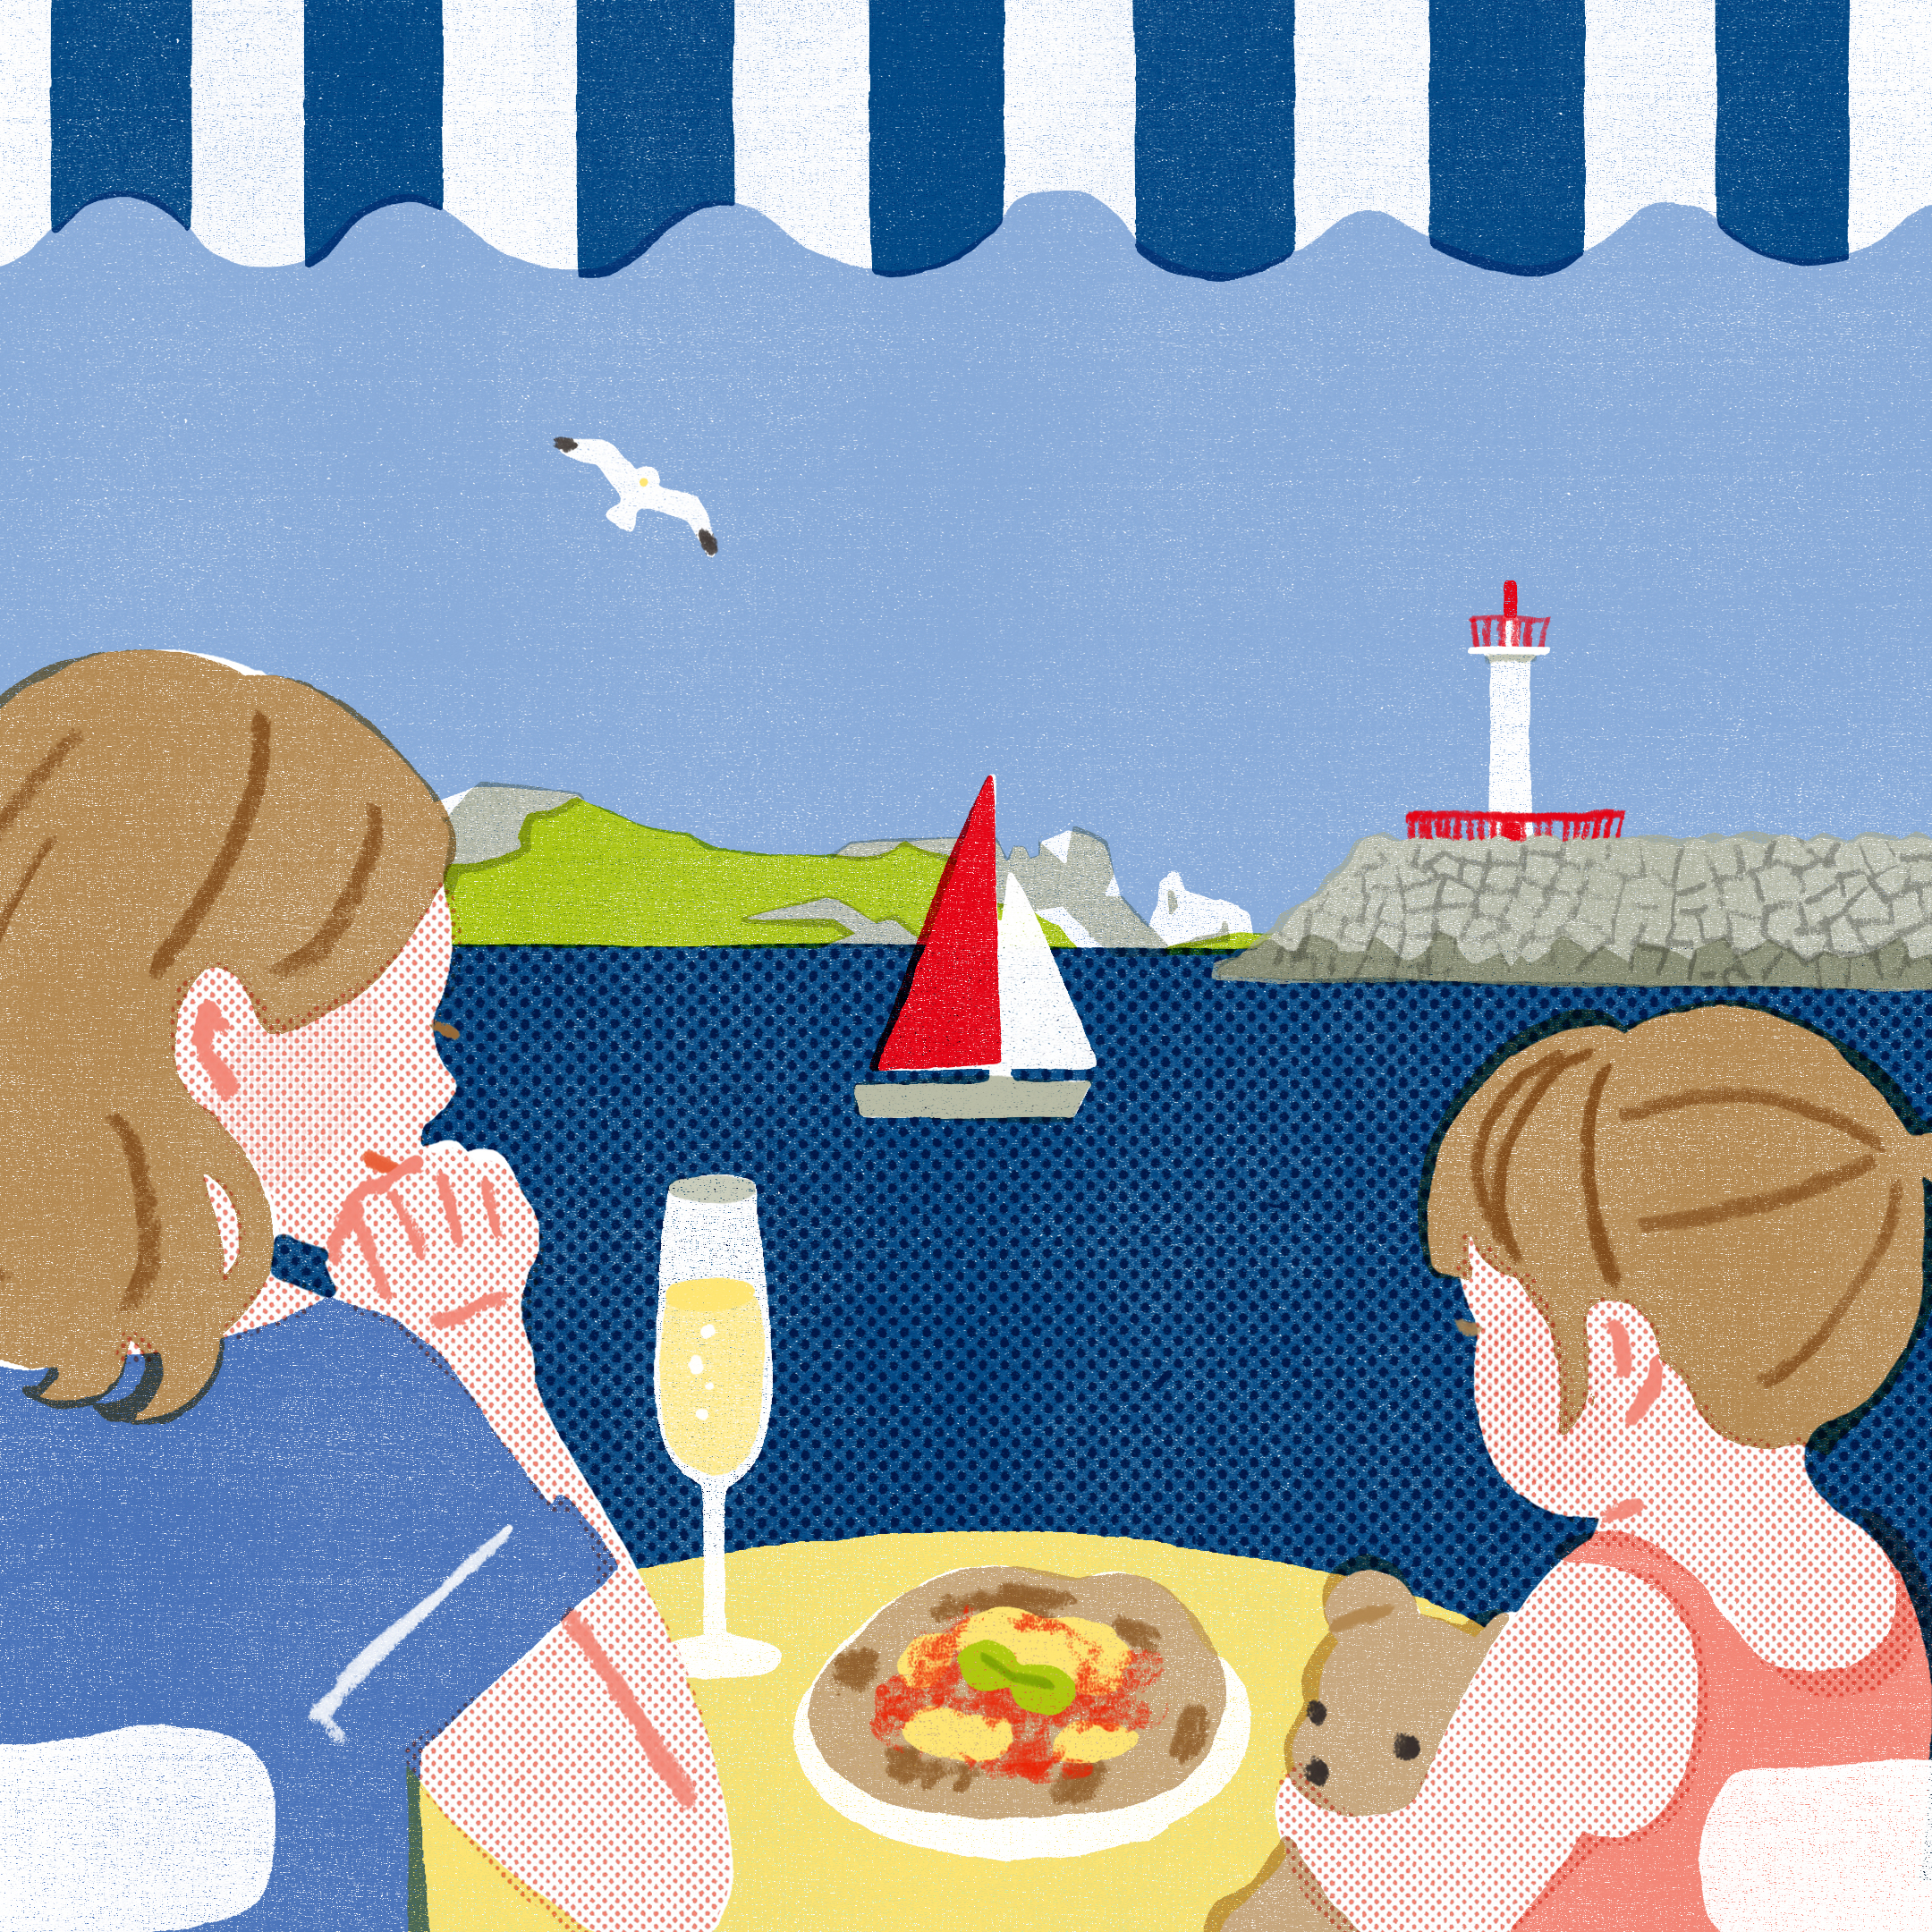 An illustration of a mother and young daughter at a seaside restaurant looking content